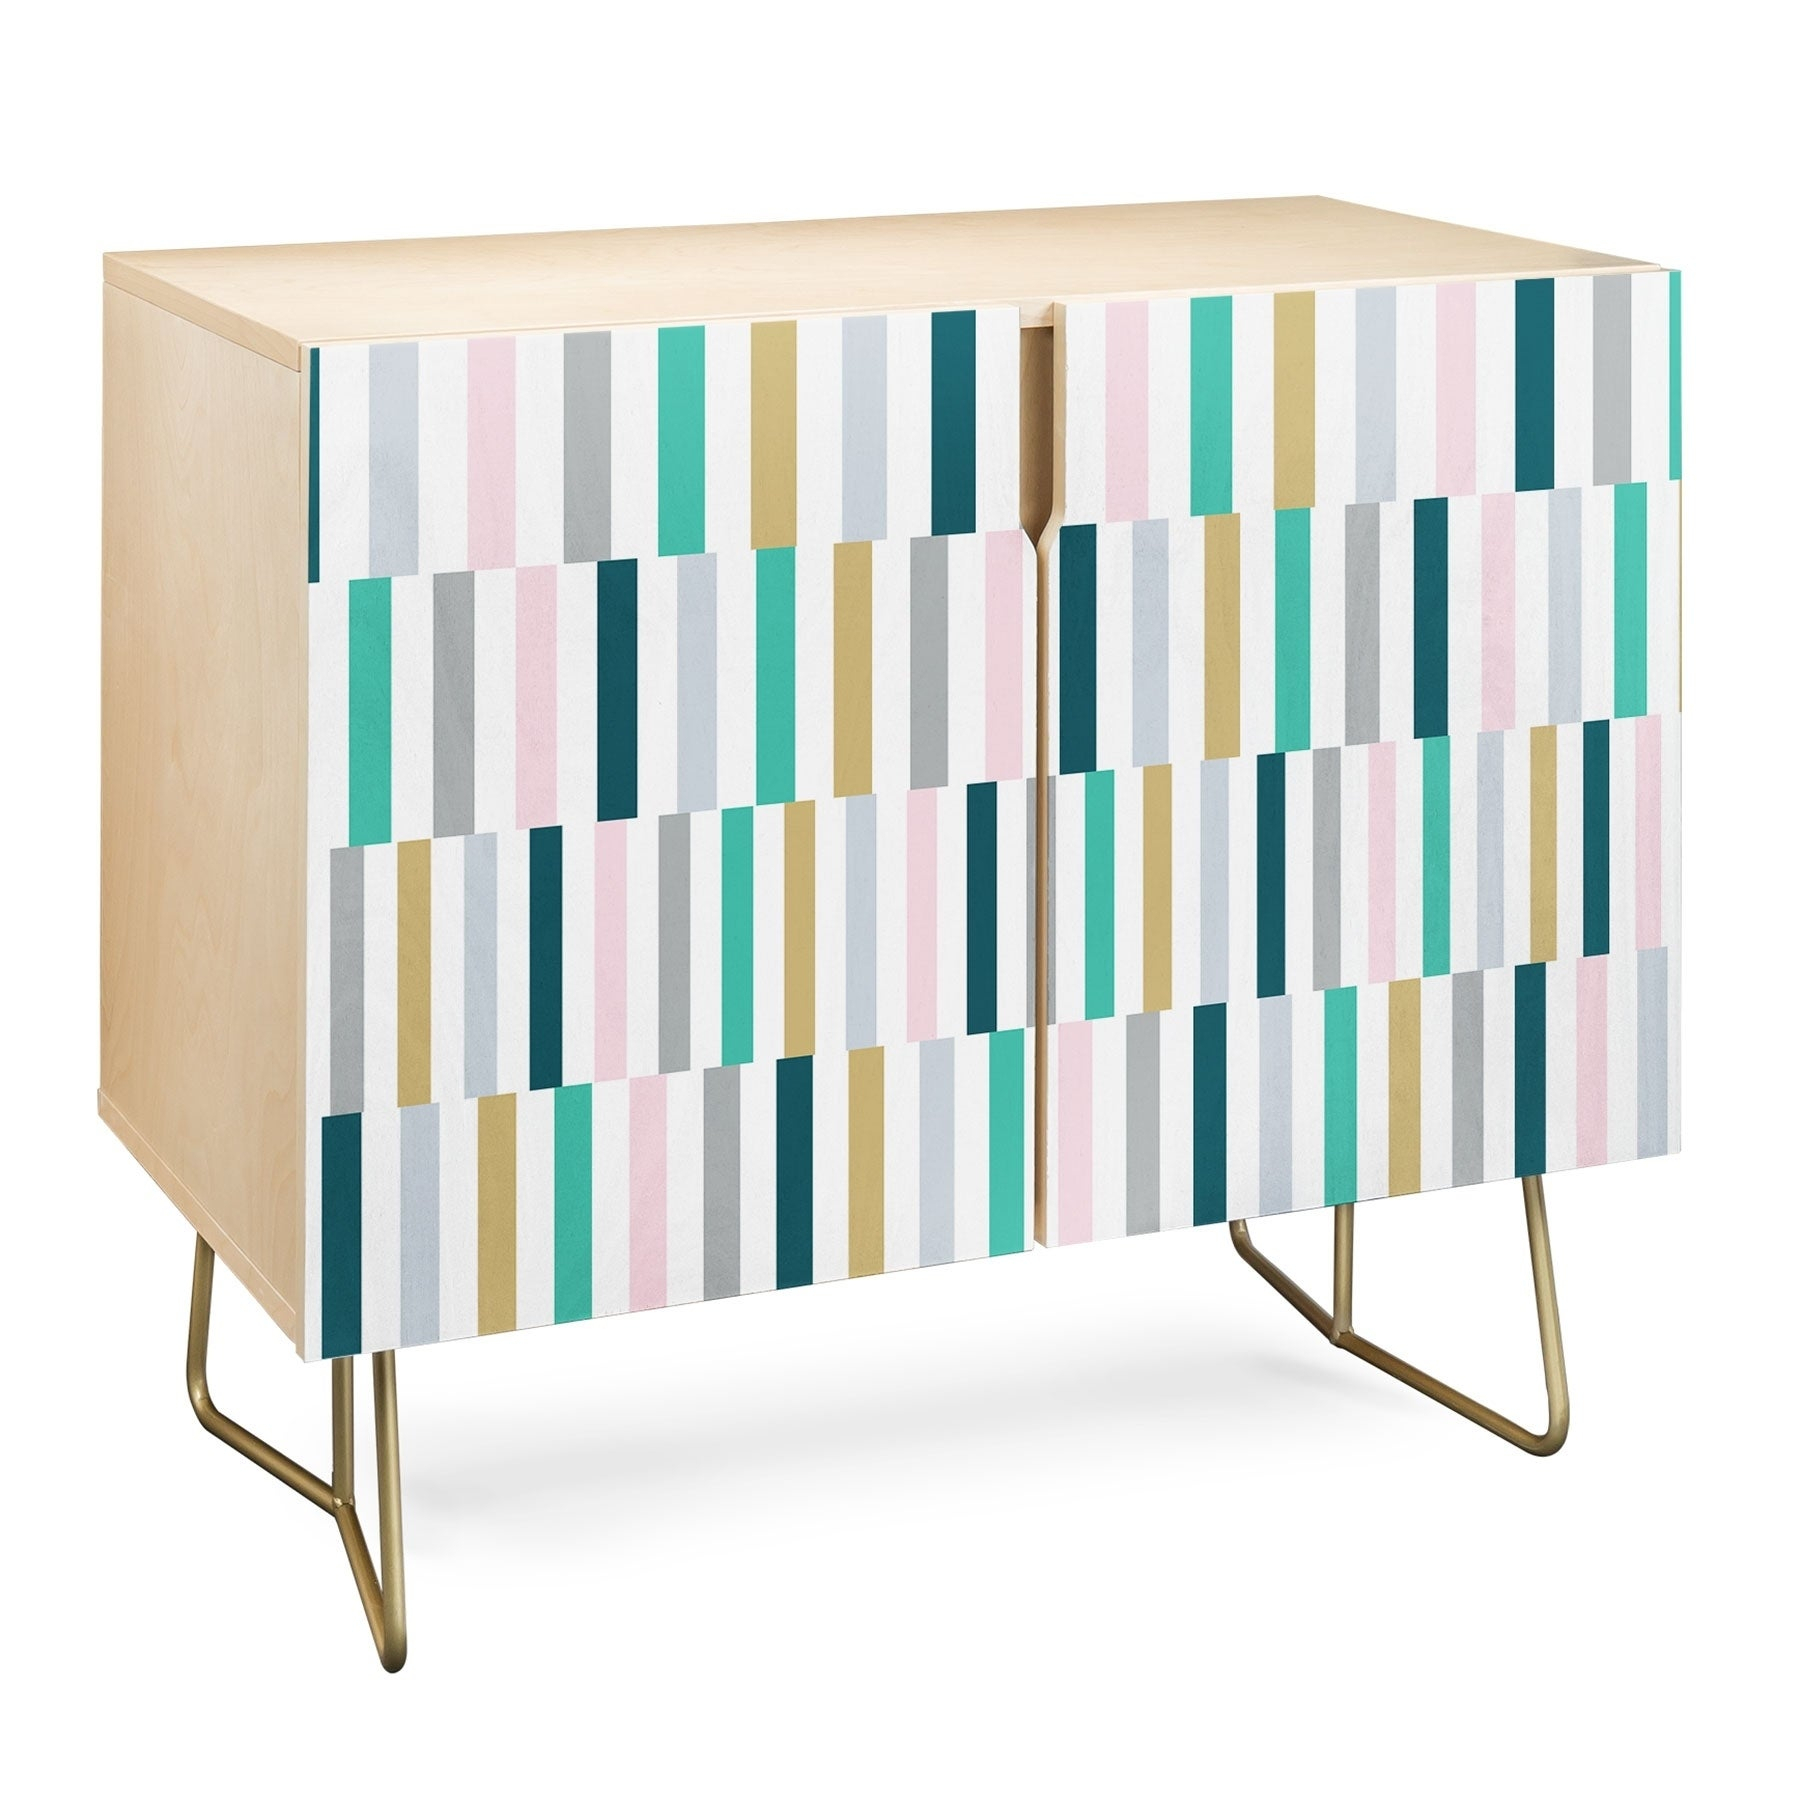 Deny Designs Scandi Stripes Credenza (Birch Or Walnut, 2 Leg Options) Pertaining To Oenomel Credenzas (Gallery 15 of 30)